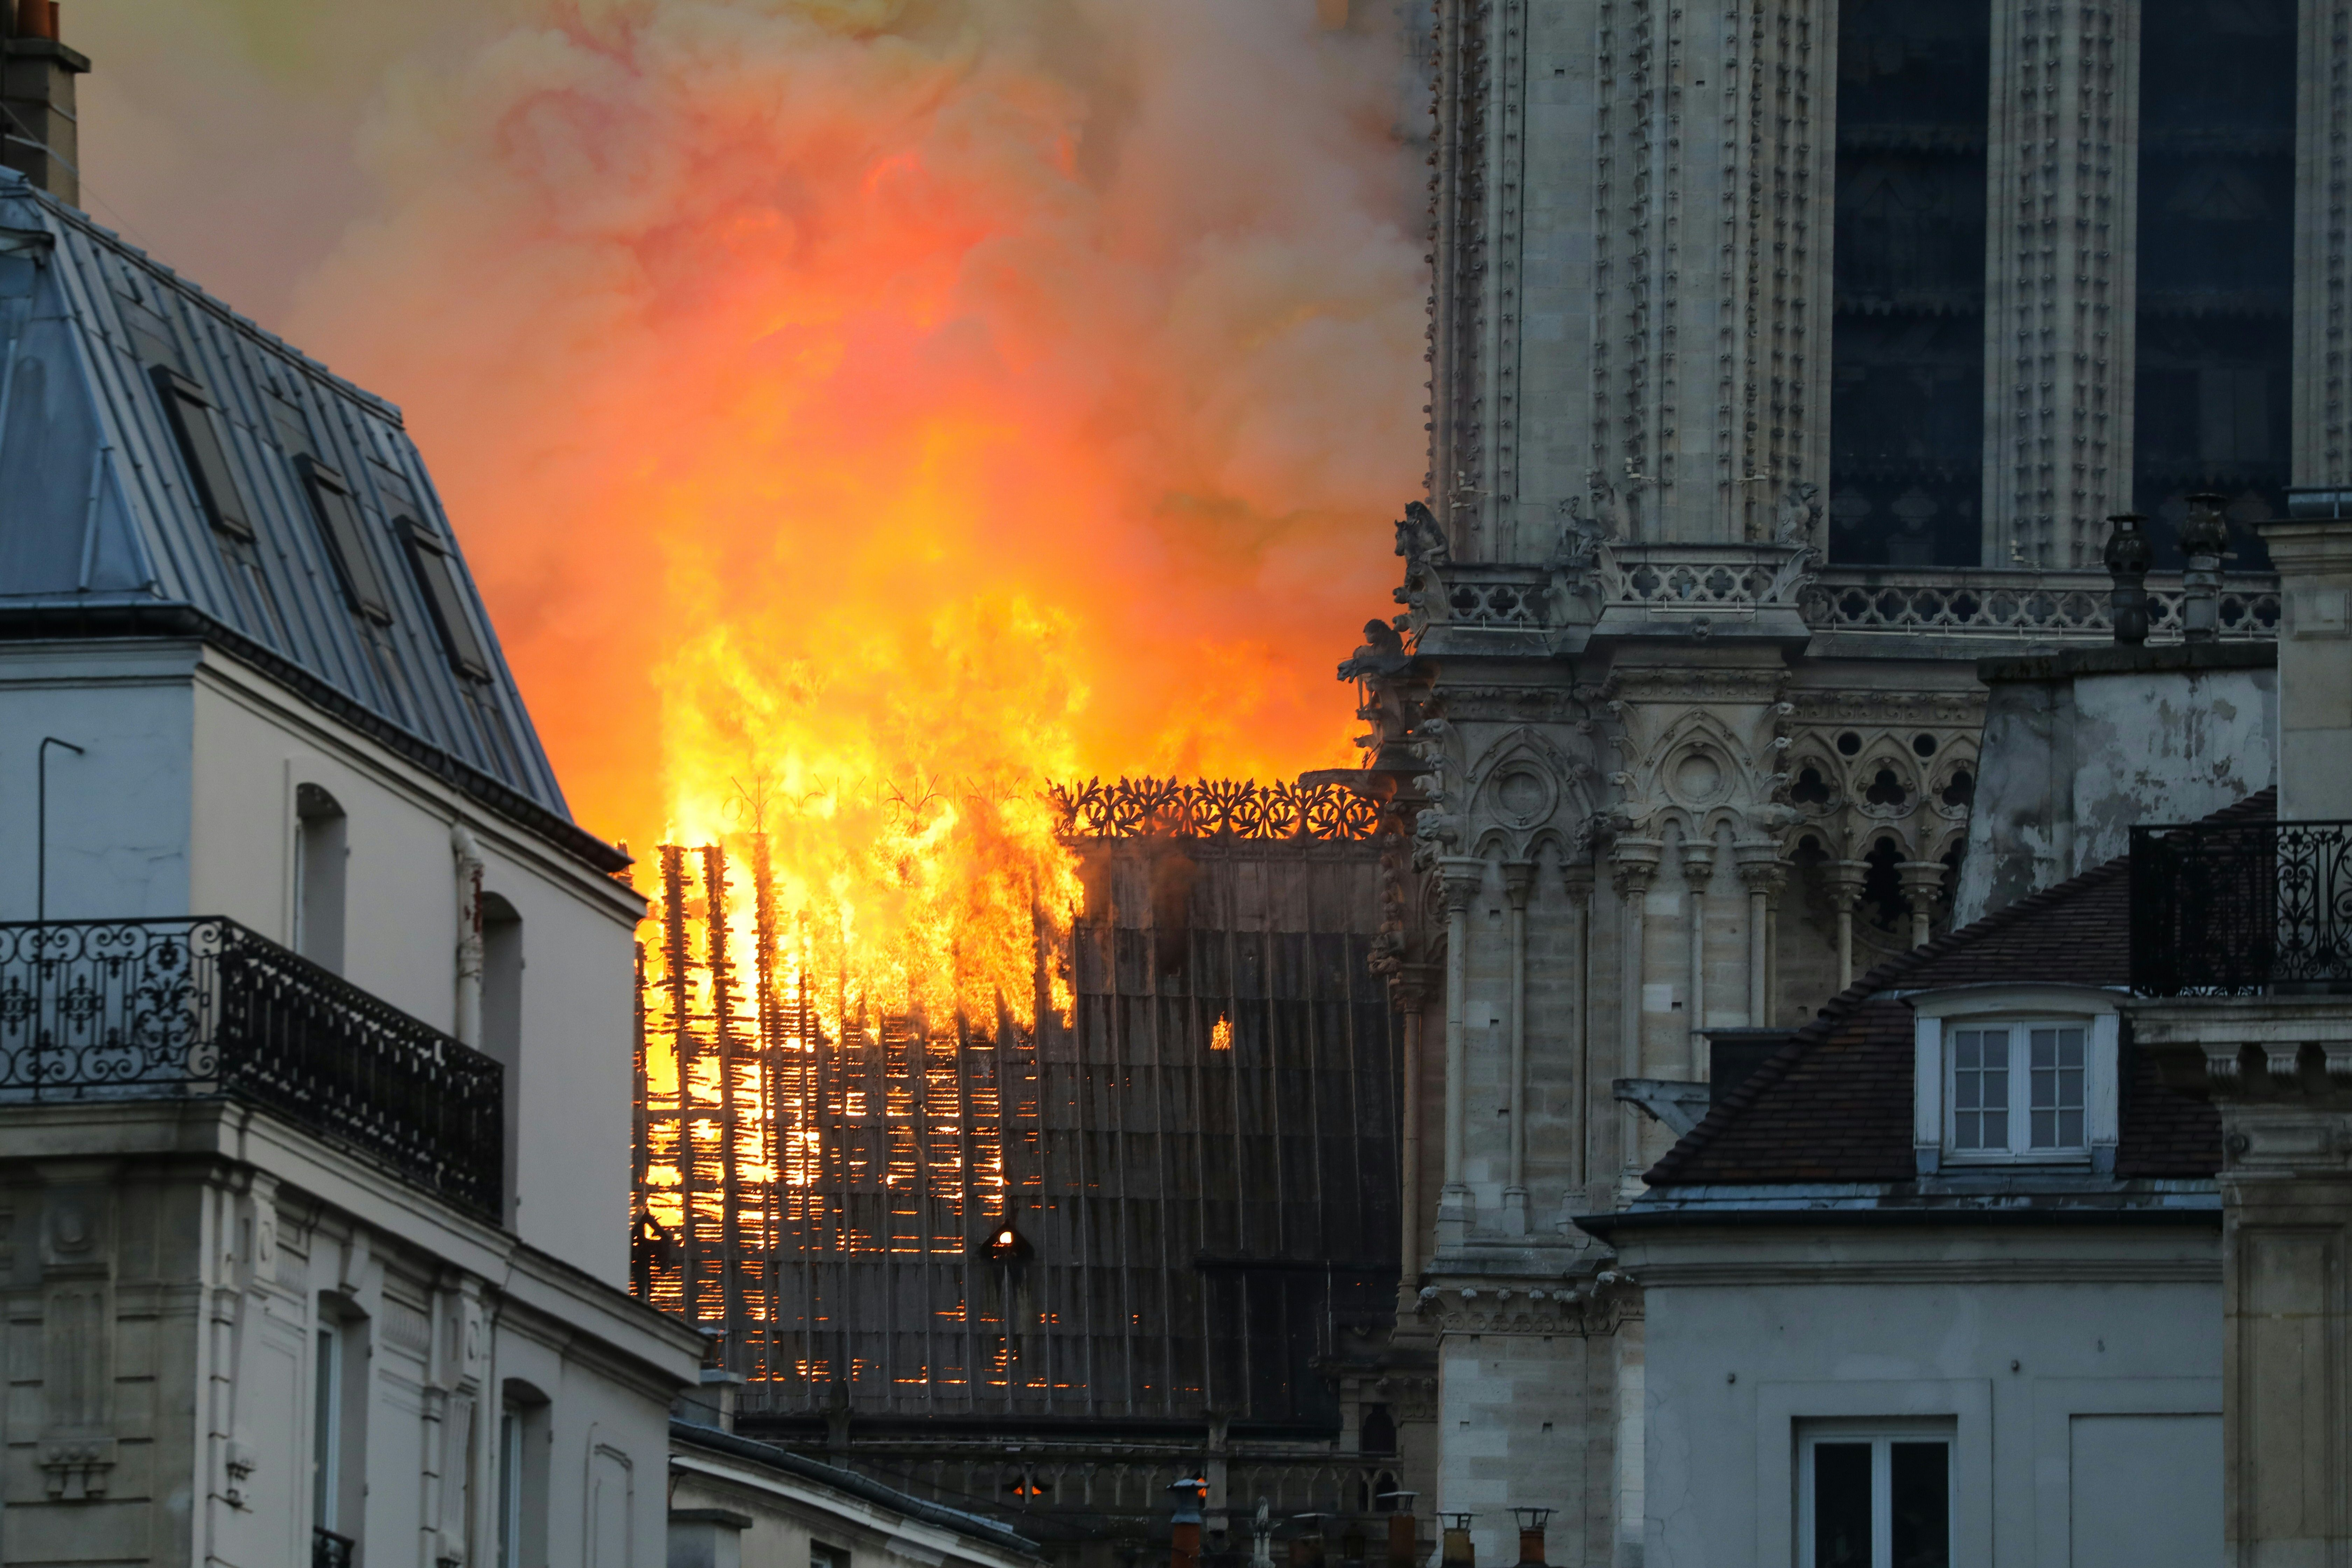 Smoke and flames rise during a fire at the landmark Notre-Dame Cathedral in central Paris on April 15, 2019, potentially involving renovation works being carried out at the site, the fire service said. - A major fire broke out at the landmark Notre-Dame Cathedral in central Paris sending flames and huge clouds of grey smoke billowing into the sky, the fire service said. The flames and smoke plumed from the spire and roof of the gothic cathedral, visited by millions of people a year, where renovations are currently underway. (Photo by LUDOVIC MARIN / AFP)        (Photo credit should read LUDOVIC MARIN/AFP/Getty Images)